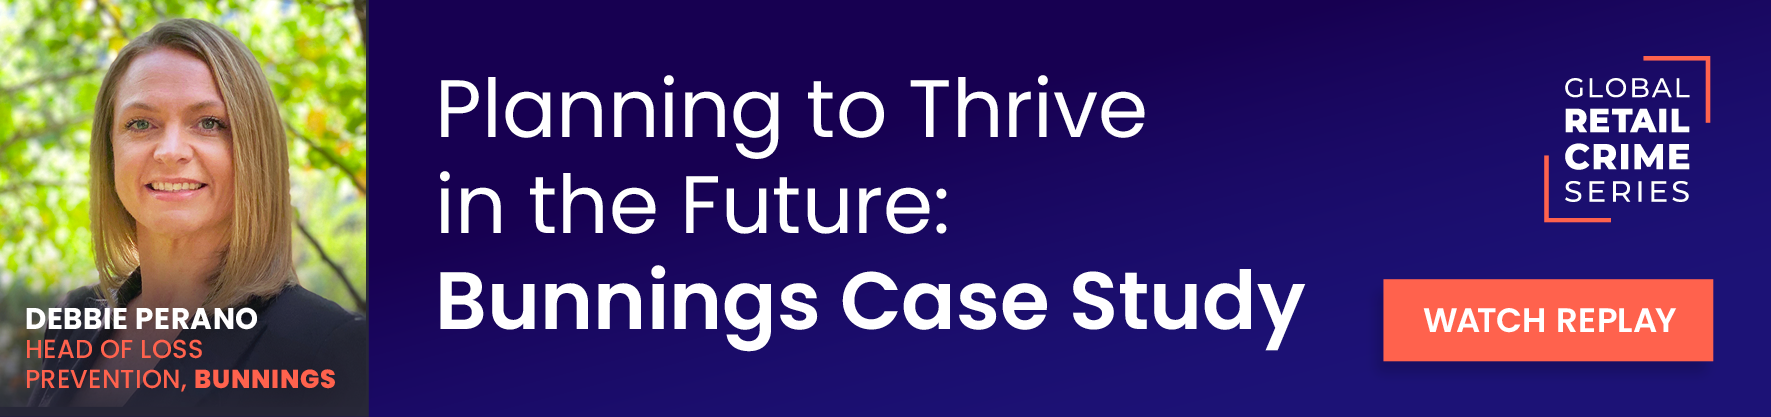 Planning to thrive in the future - Bunnings case study